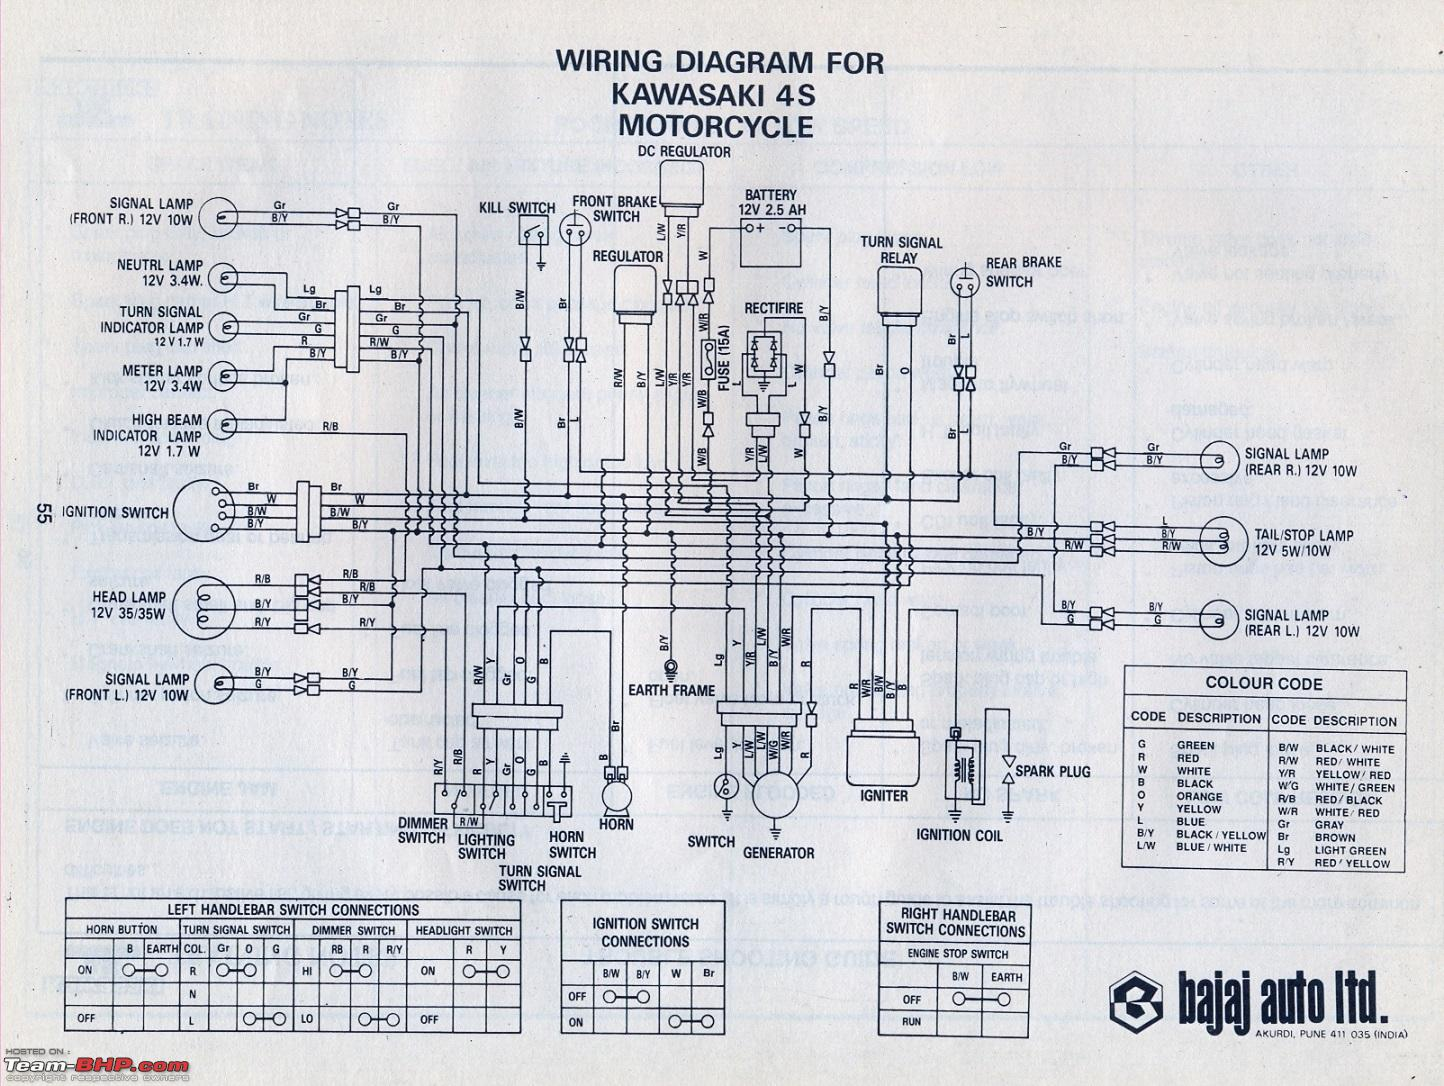 Owners Manual Scans Of Indian Motorcycles Page 6 Team Bhp Suzuki X 90 Wiring Diagram Scan0002a